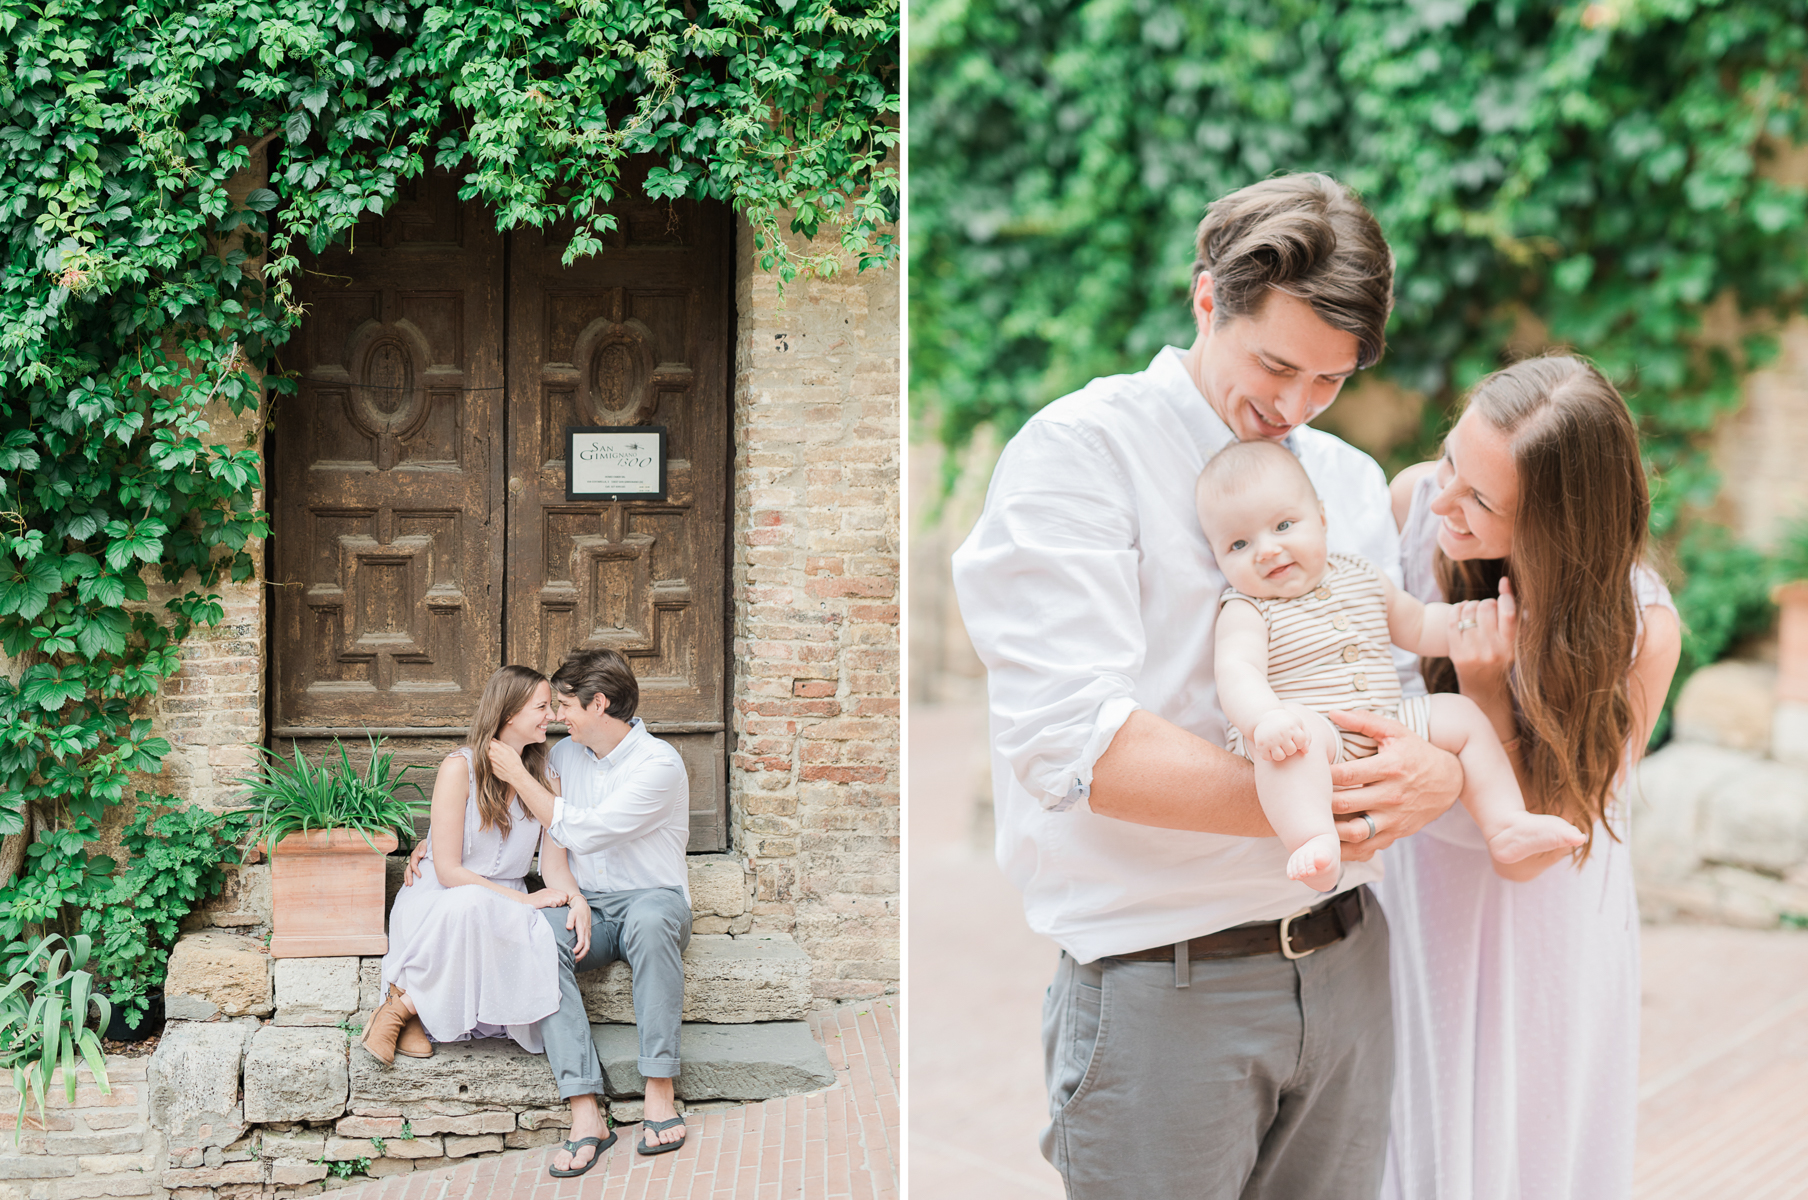 AKP_San_Gimignano_Tuscany_family_shoot_wedding_engagement_photographer-12.jpg